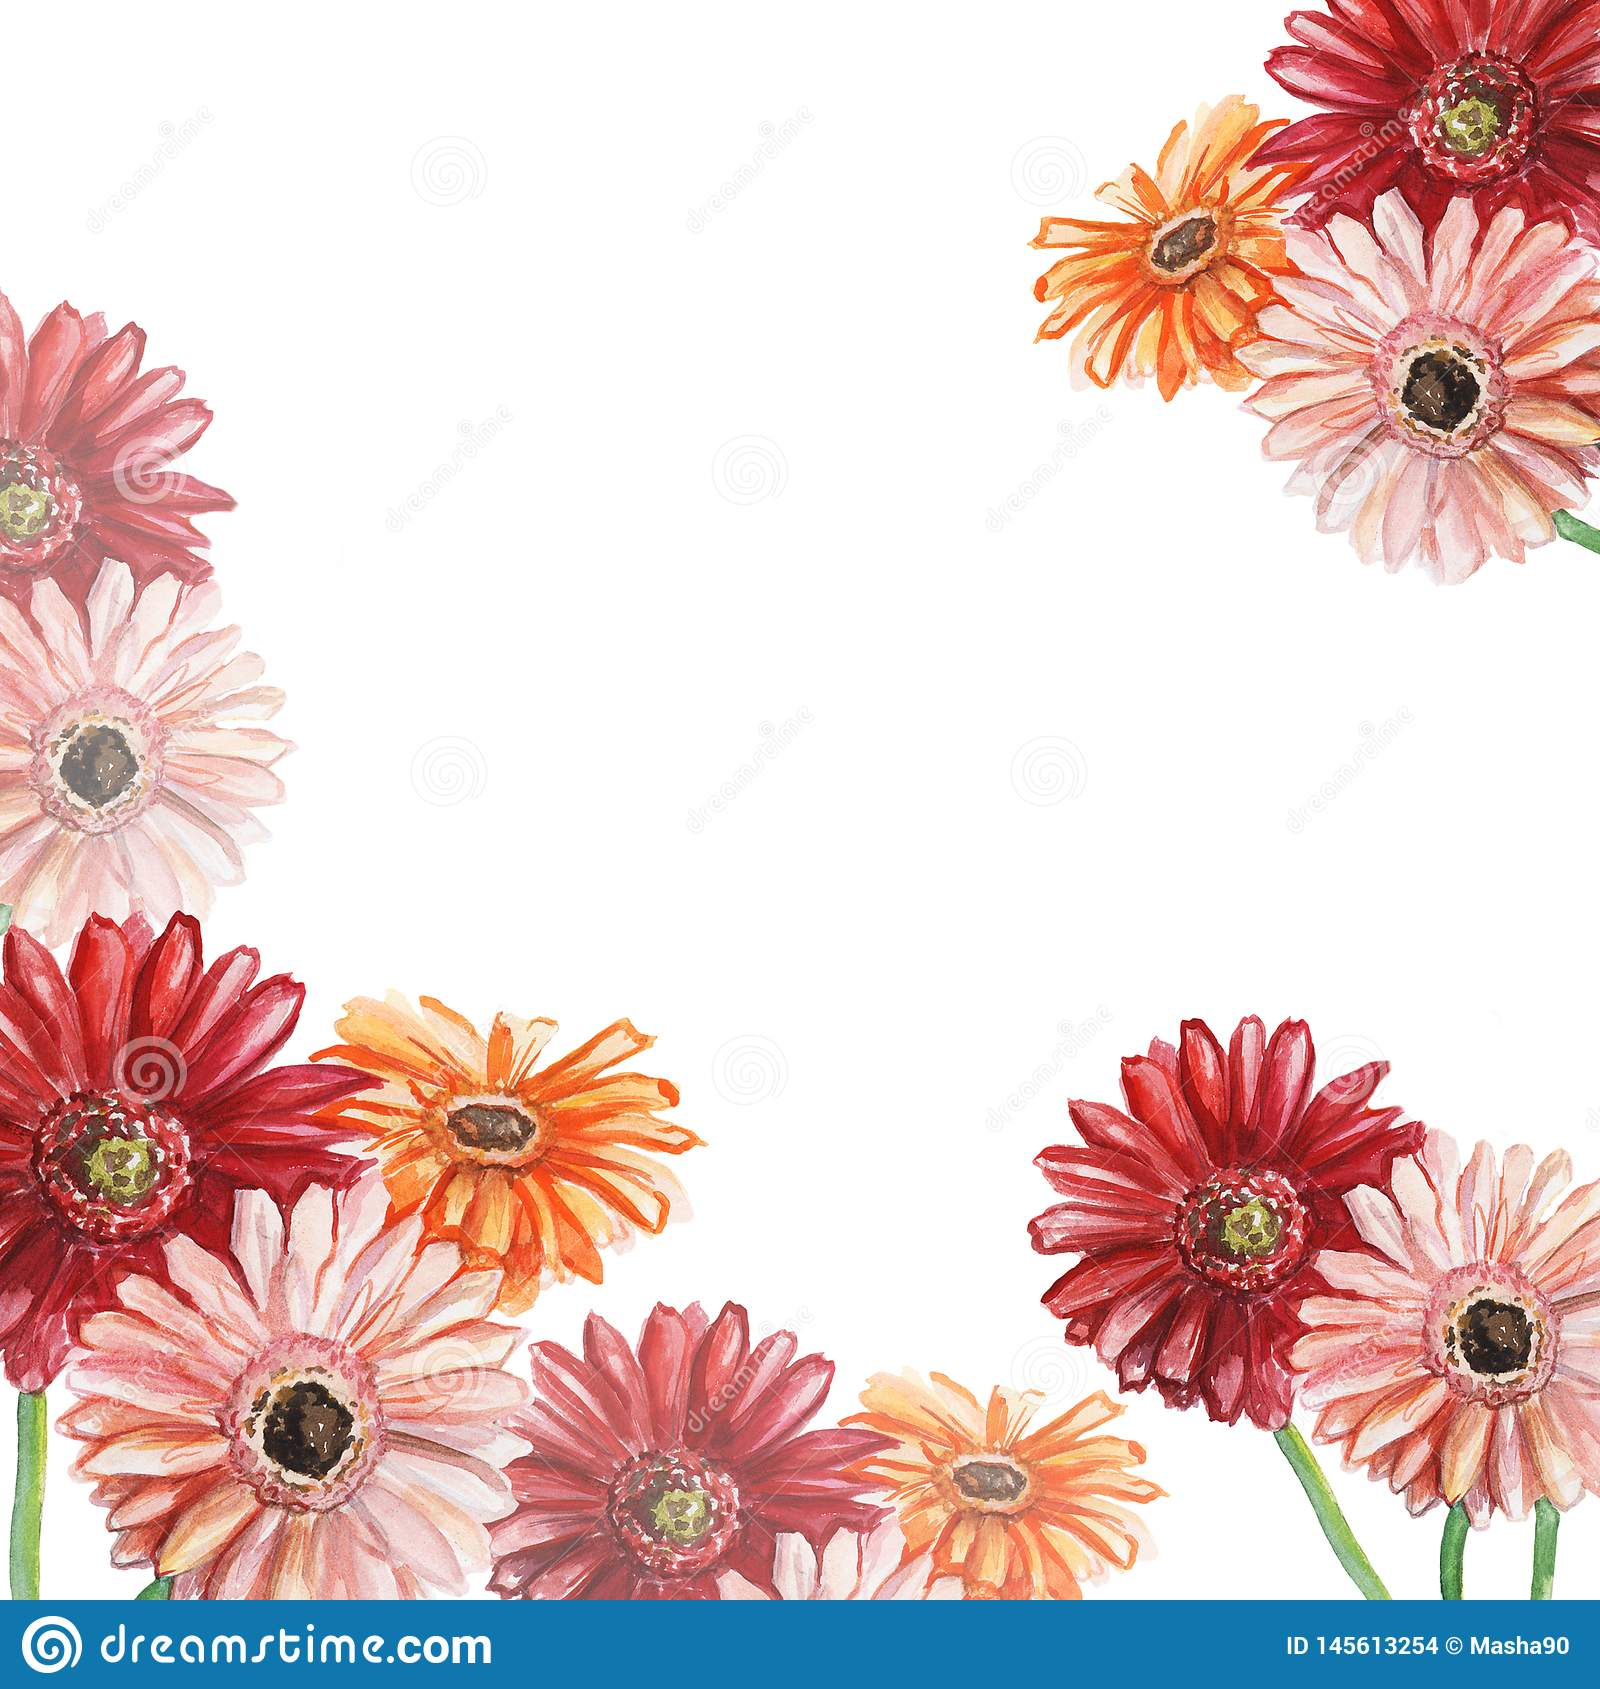 Frame with pink, red and orange gerberas. Watercolor illustration.